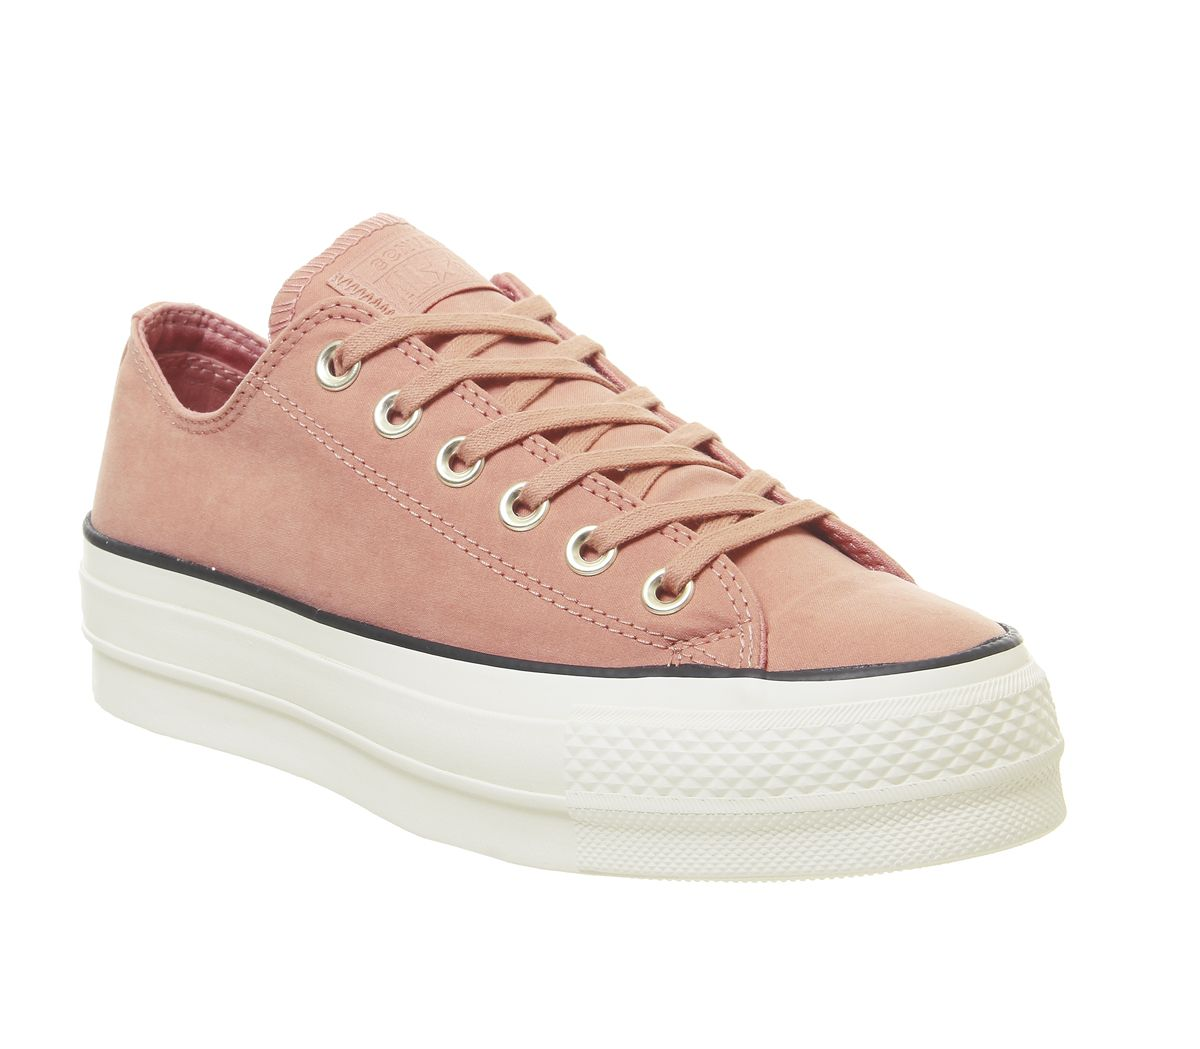 aac797816acb1 Converse All Star Low Platform Trainers Pink Blush Black Egret ...